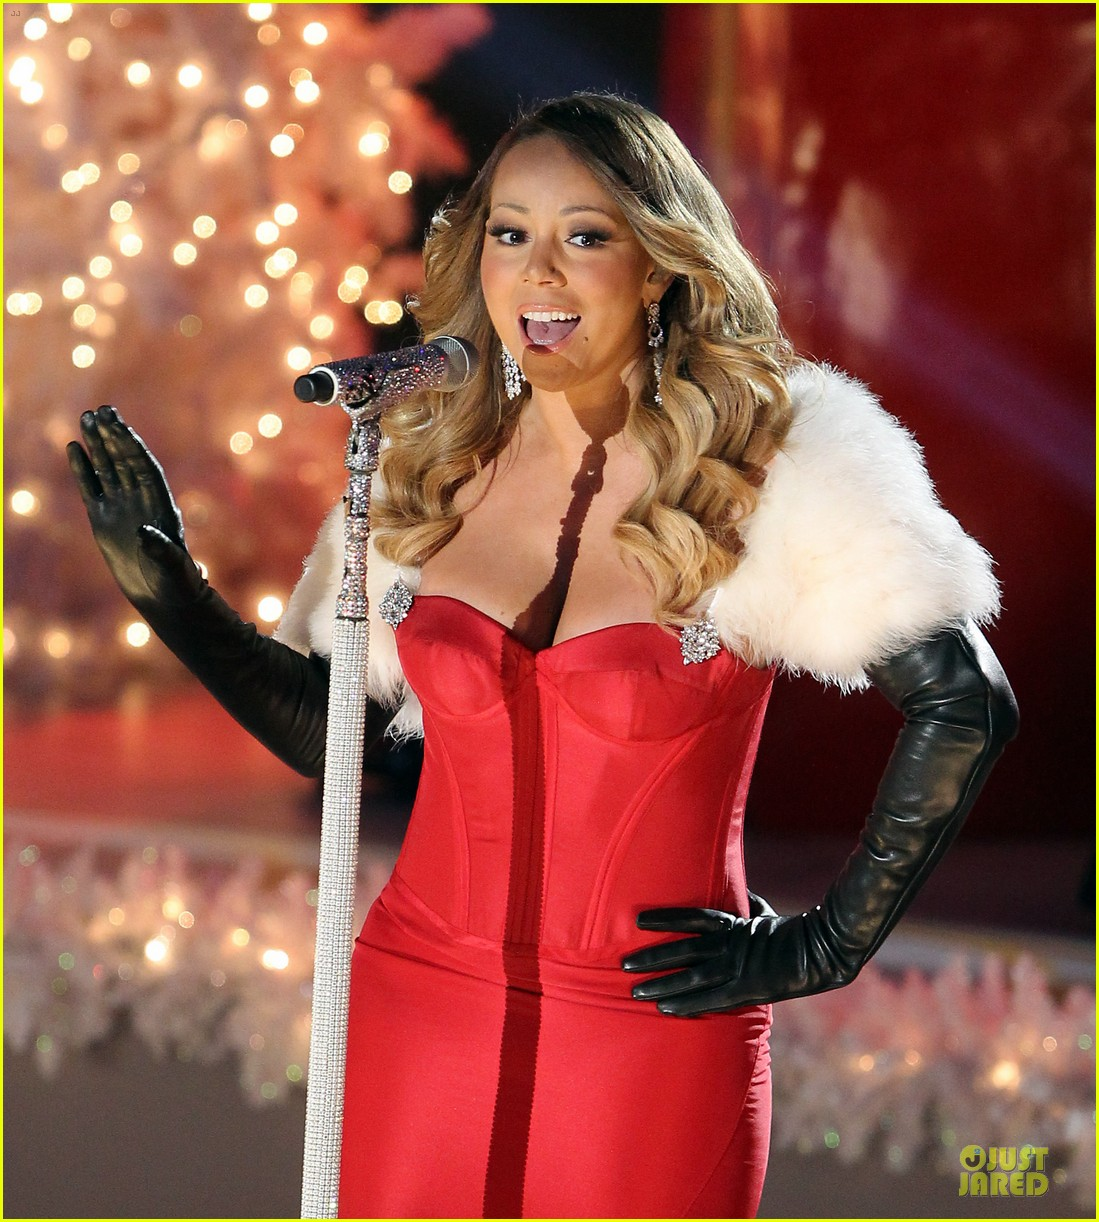 mariah carey rockfeller center christmas tree lighting 2013 performer 16